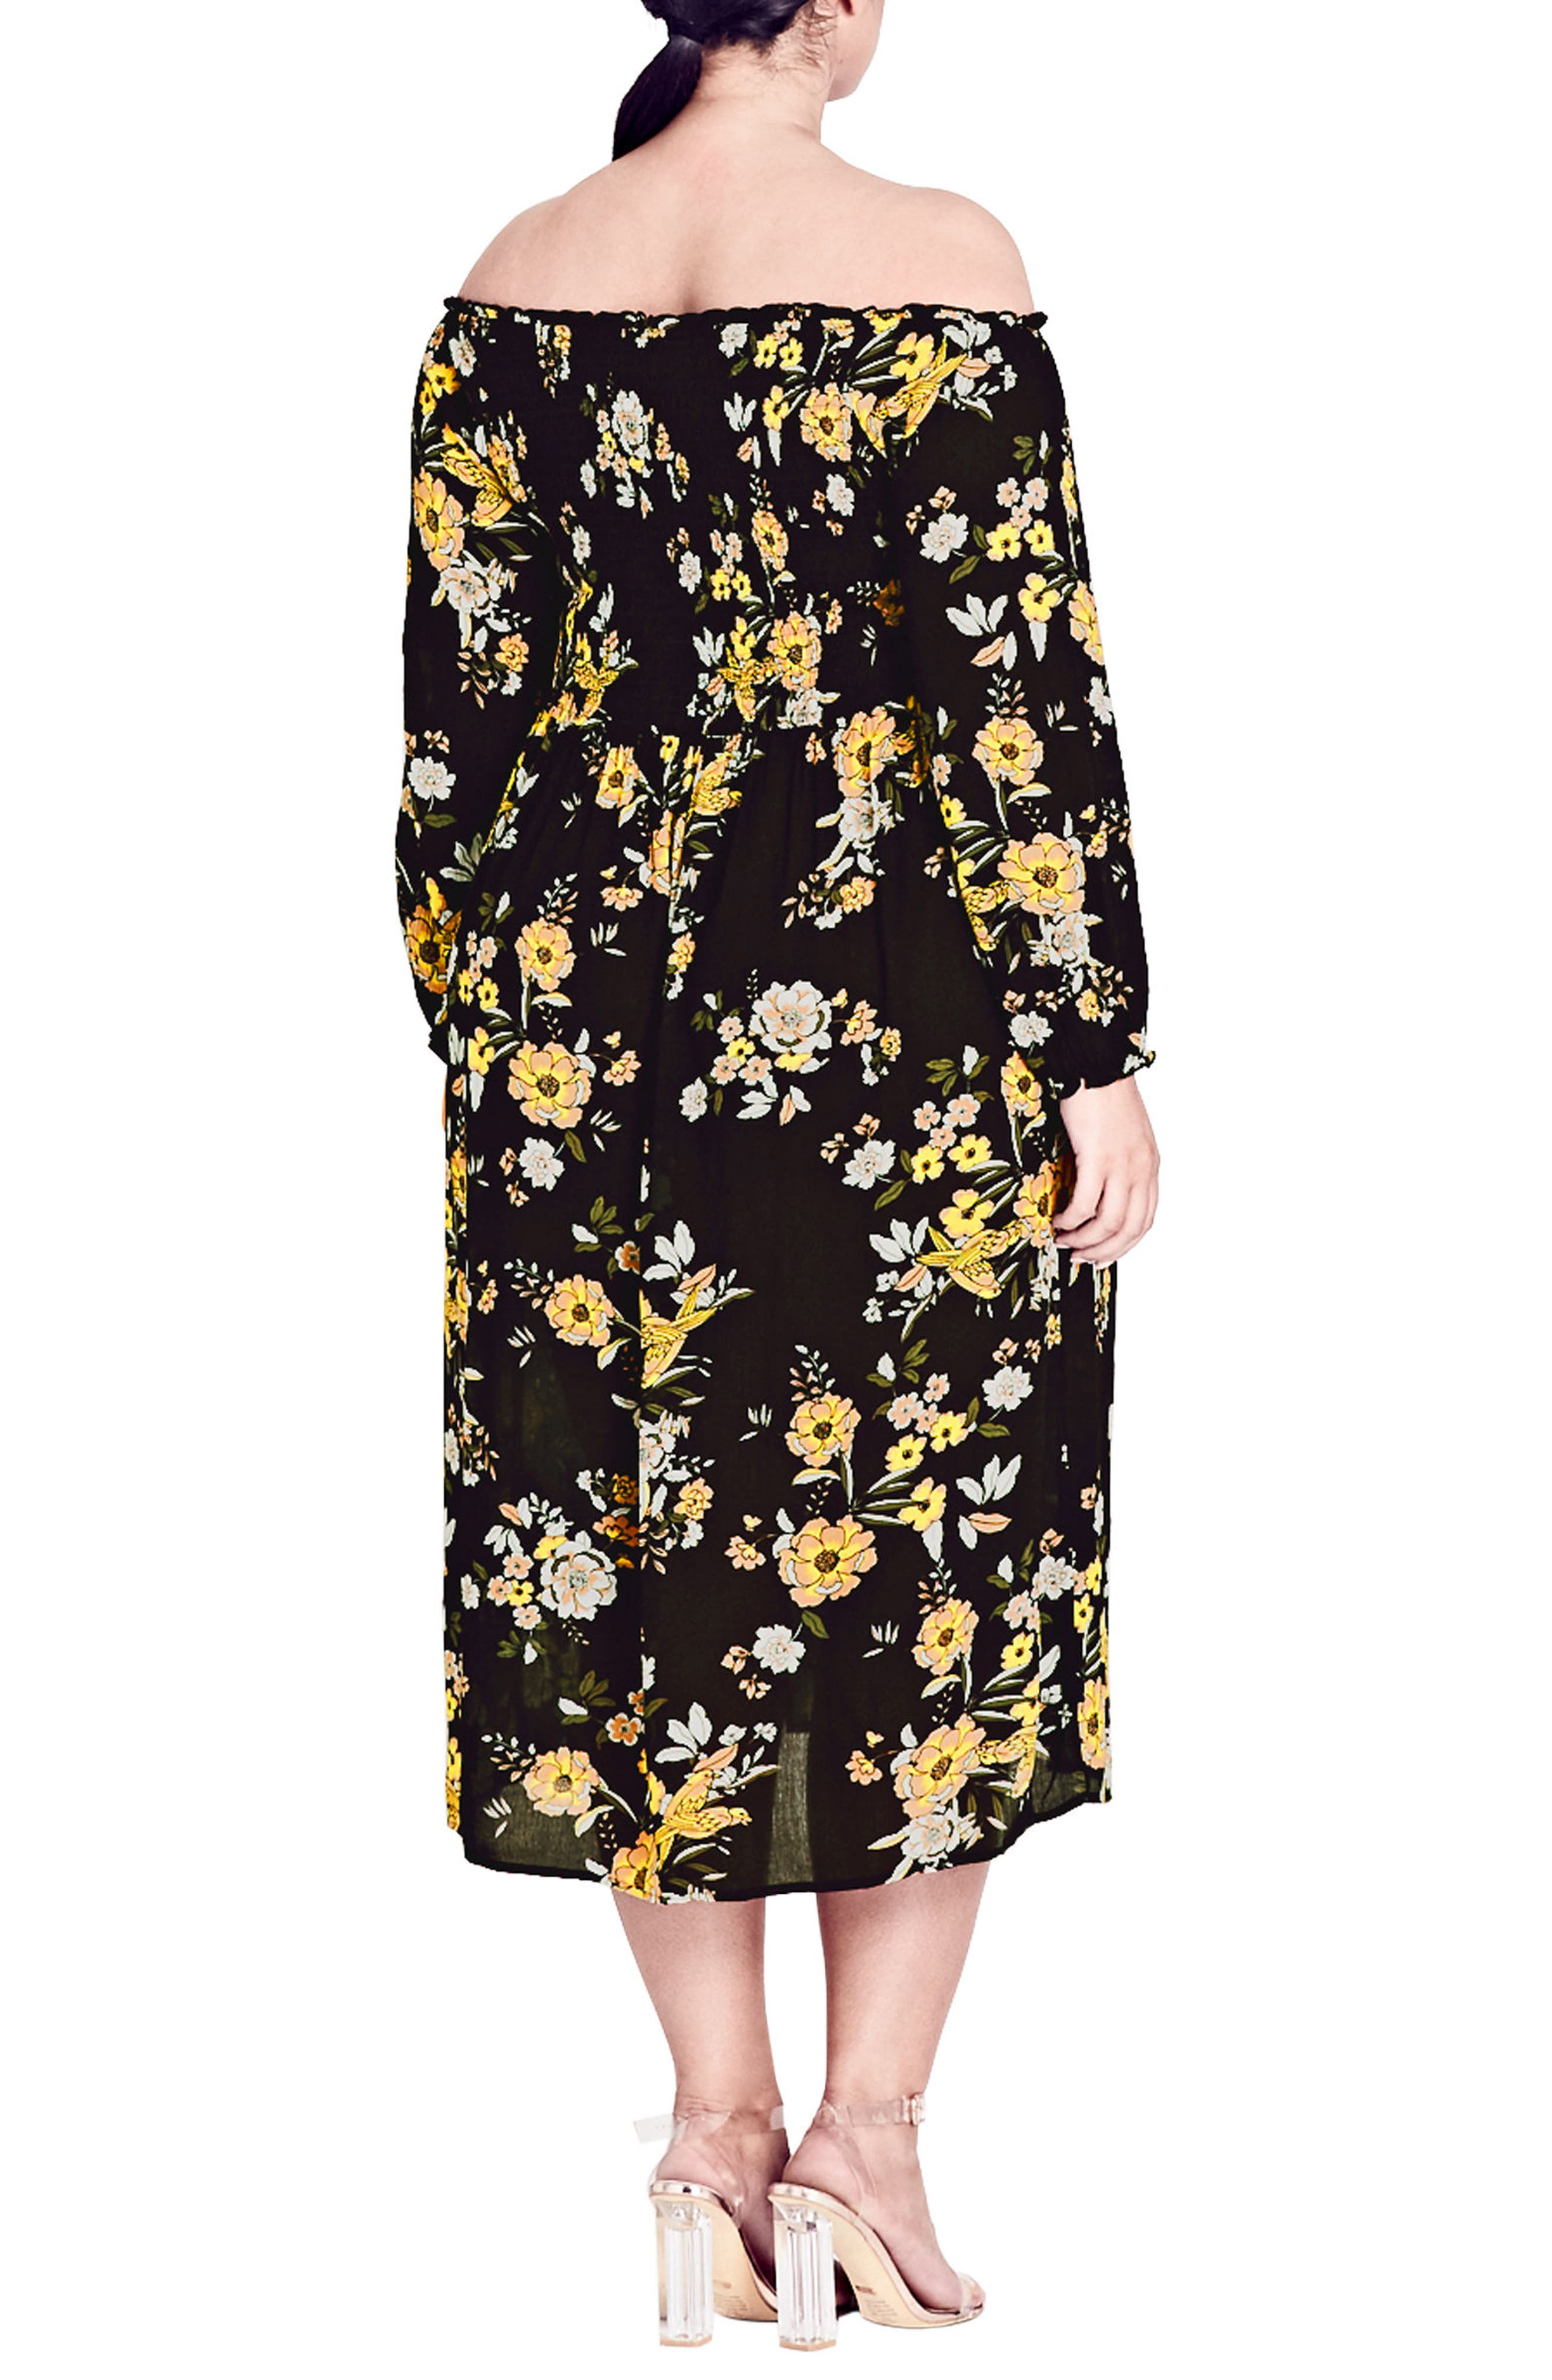 Miss Chirpy Off the Shoulder Dress,                             Alternate thumbnail 2, color,                             Miss Chirpy